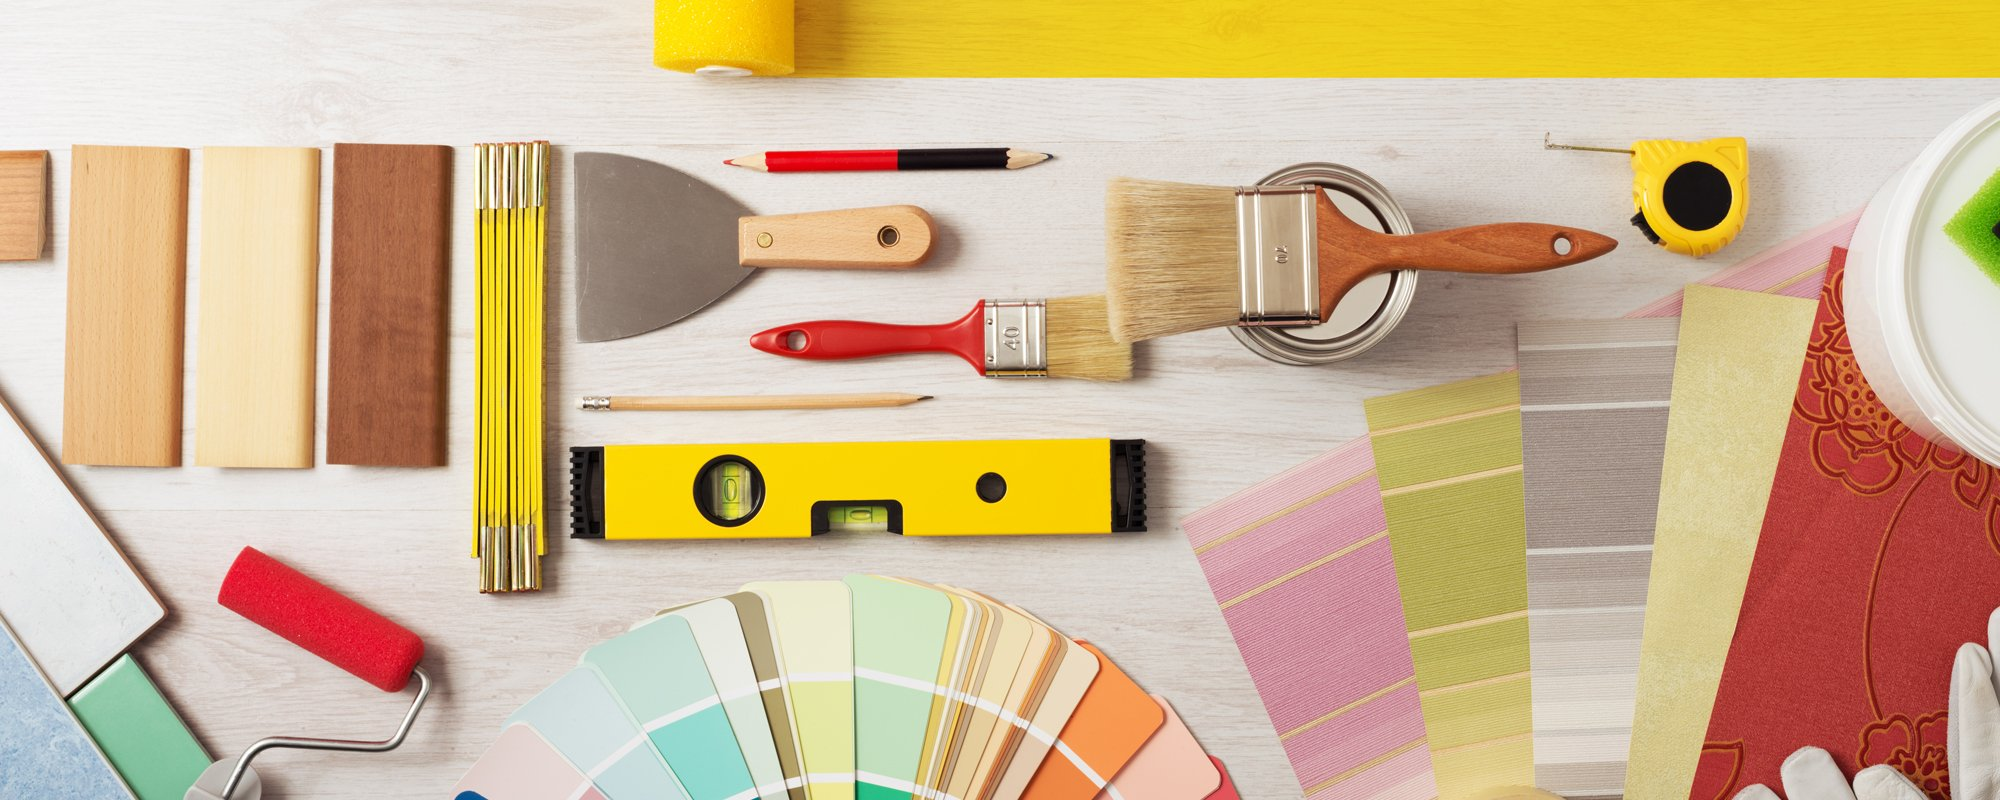 Tools used for painting